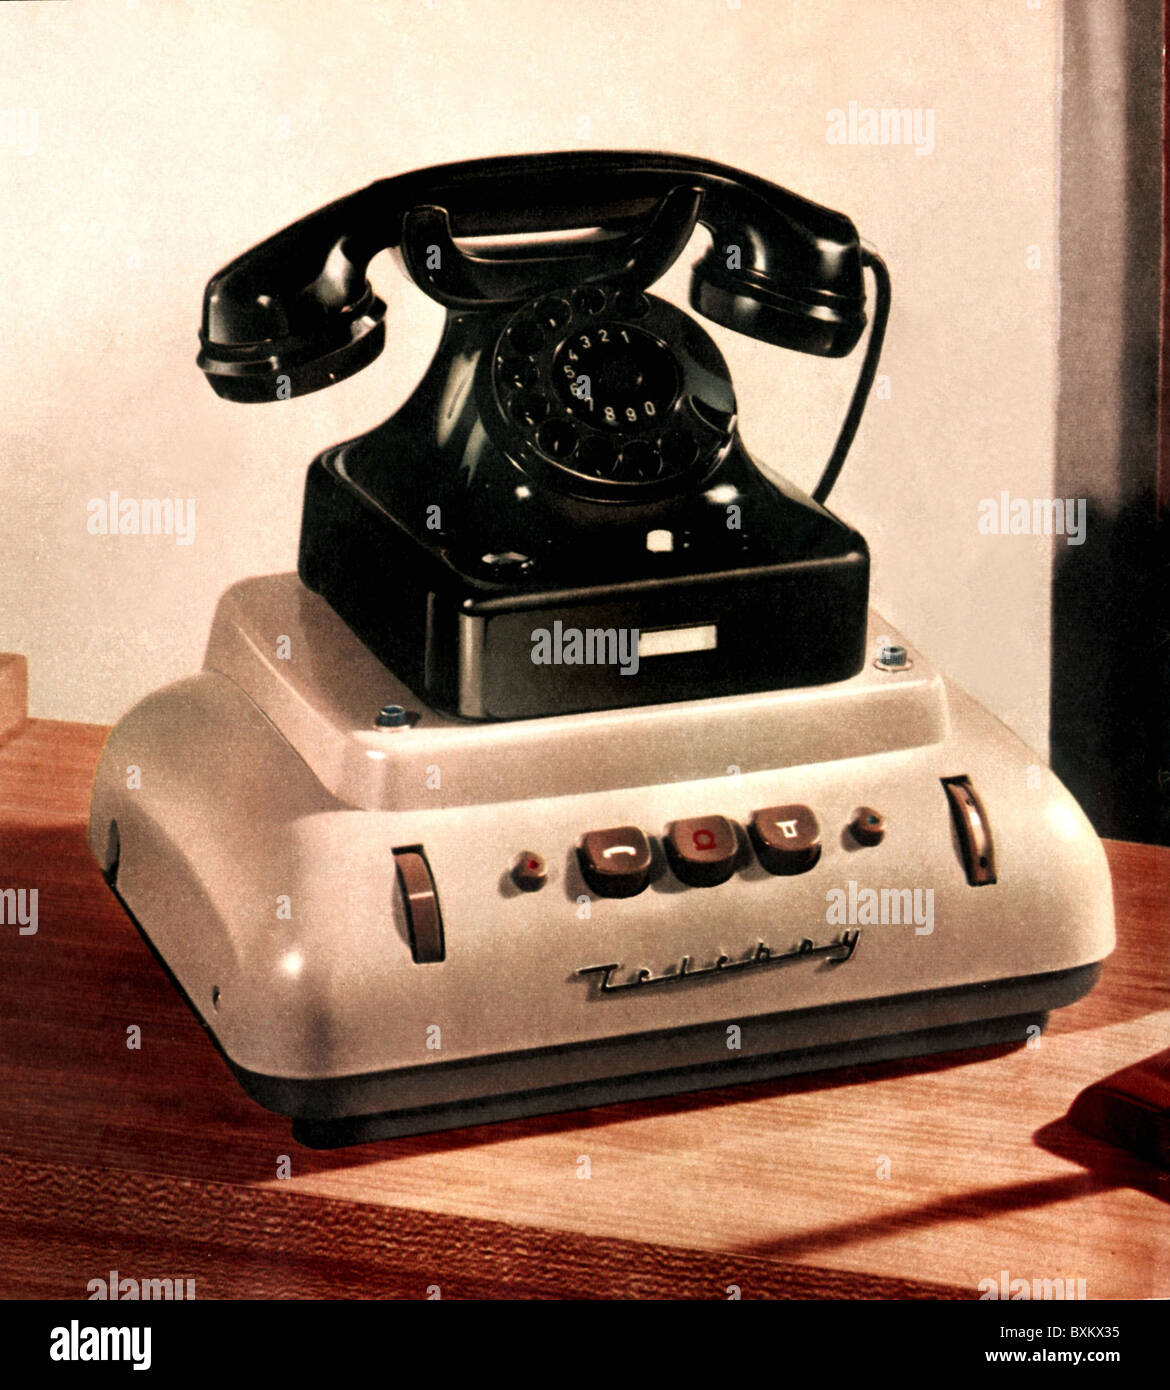 century office equipment. perfect equipment office office equipment telephone siemens w48 with answering machine  grundig teleboy germany 1957 invention 1950s 50s co for century office equipment e